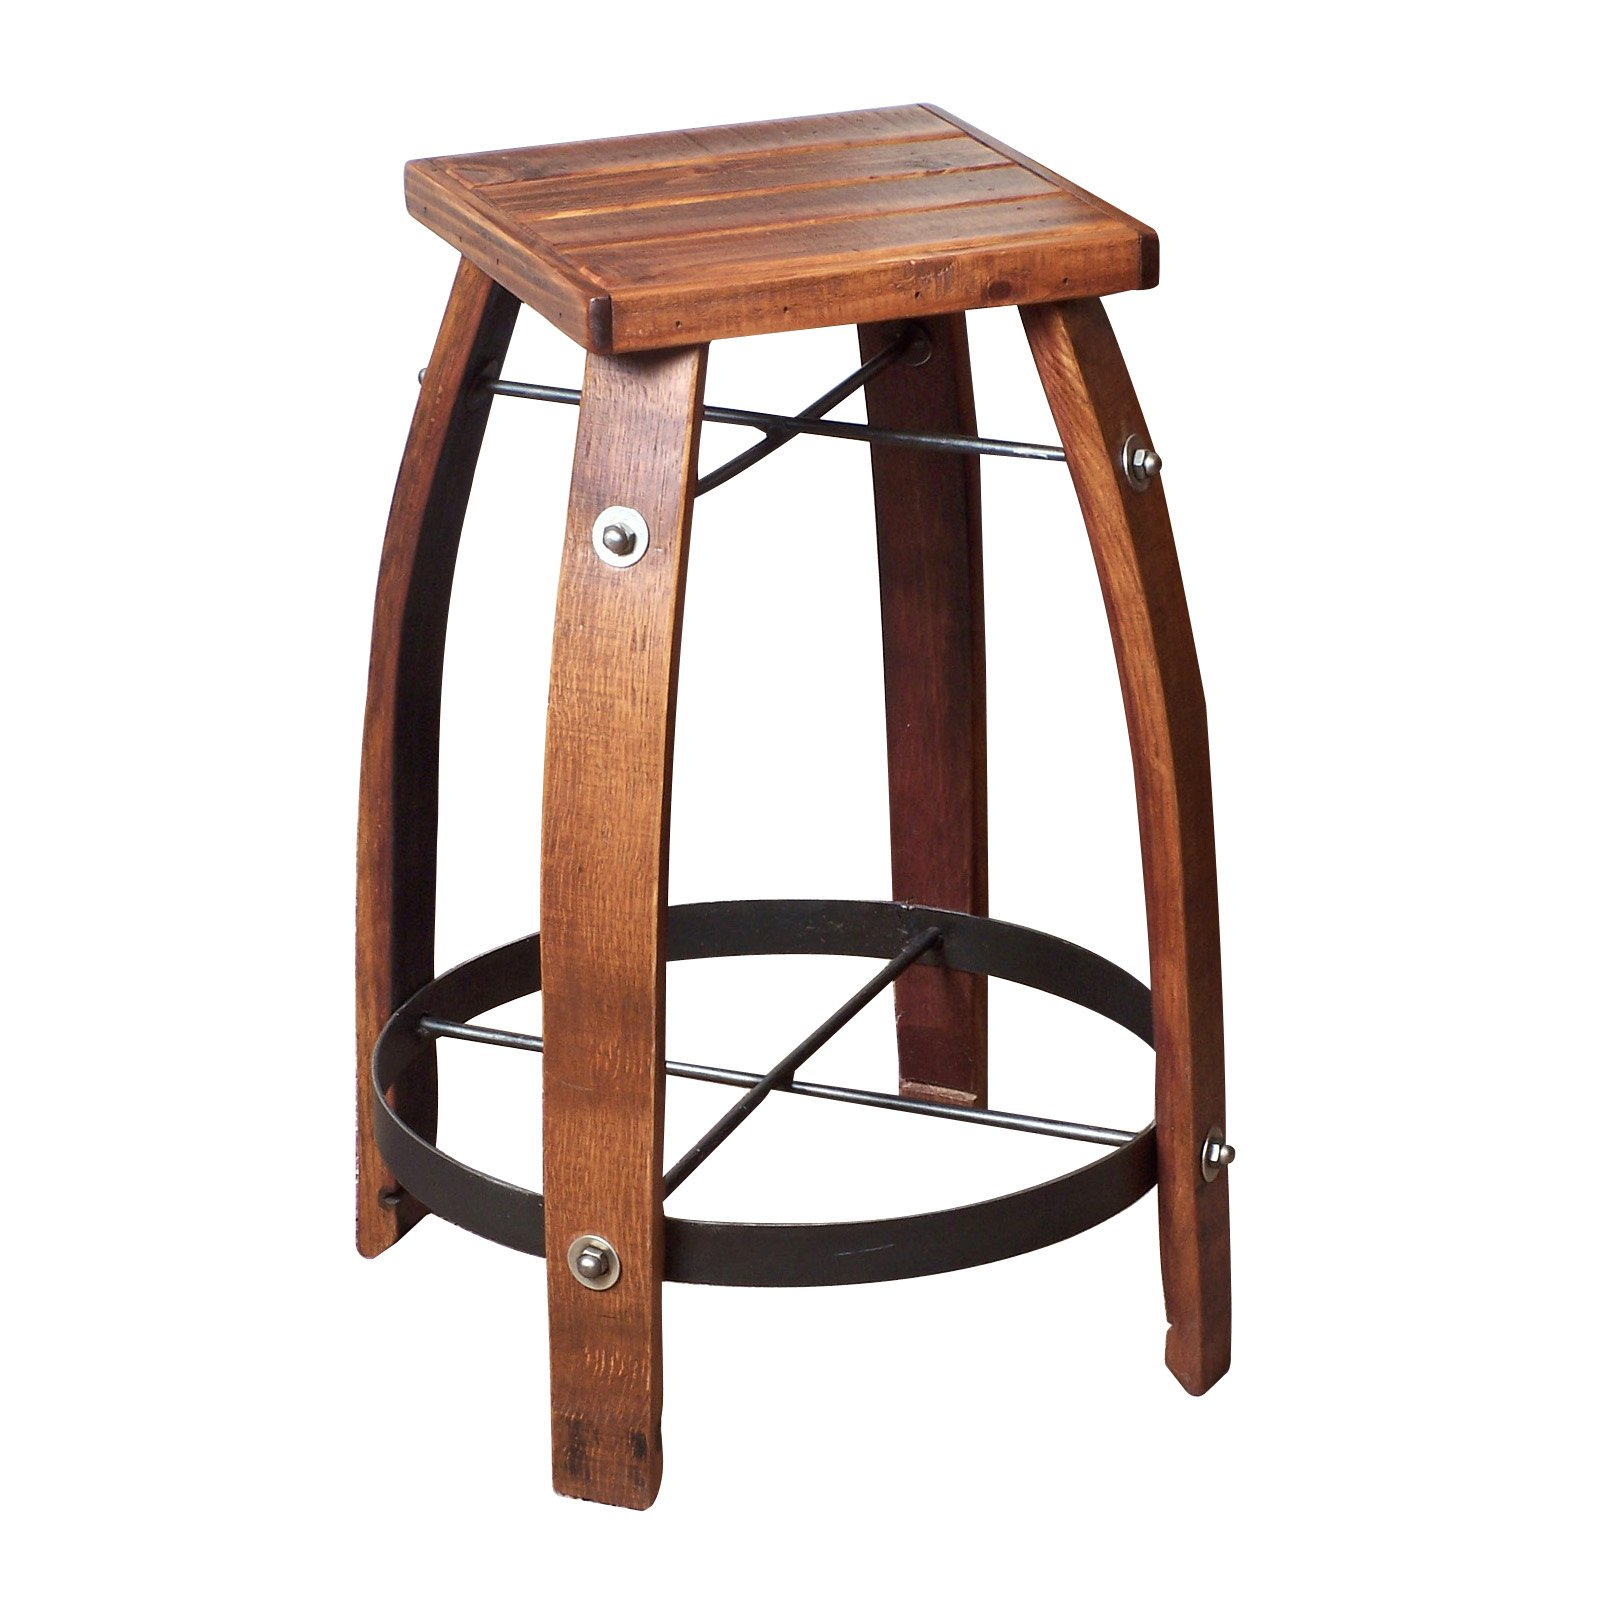 2 Day Designs Reclaimed 28-Inch Stave Wine Barrel Bar Stool with Wood Seat